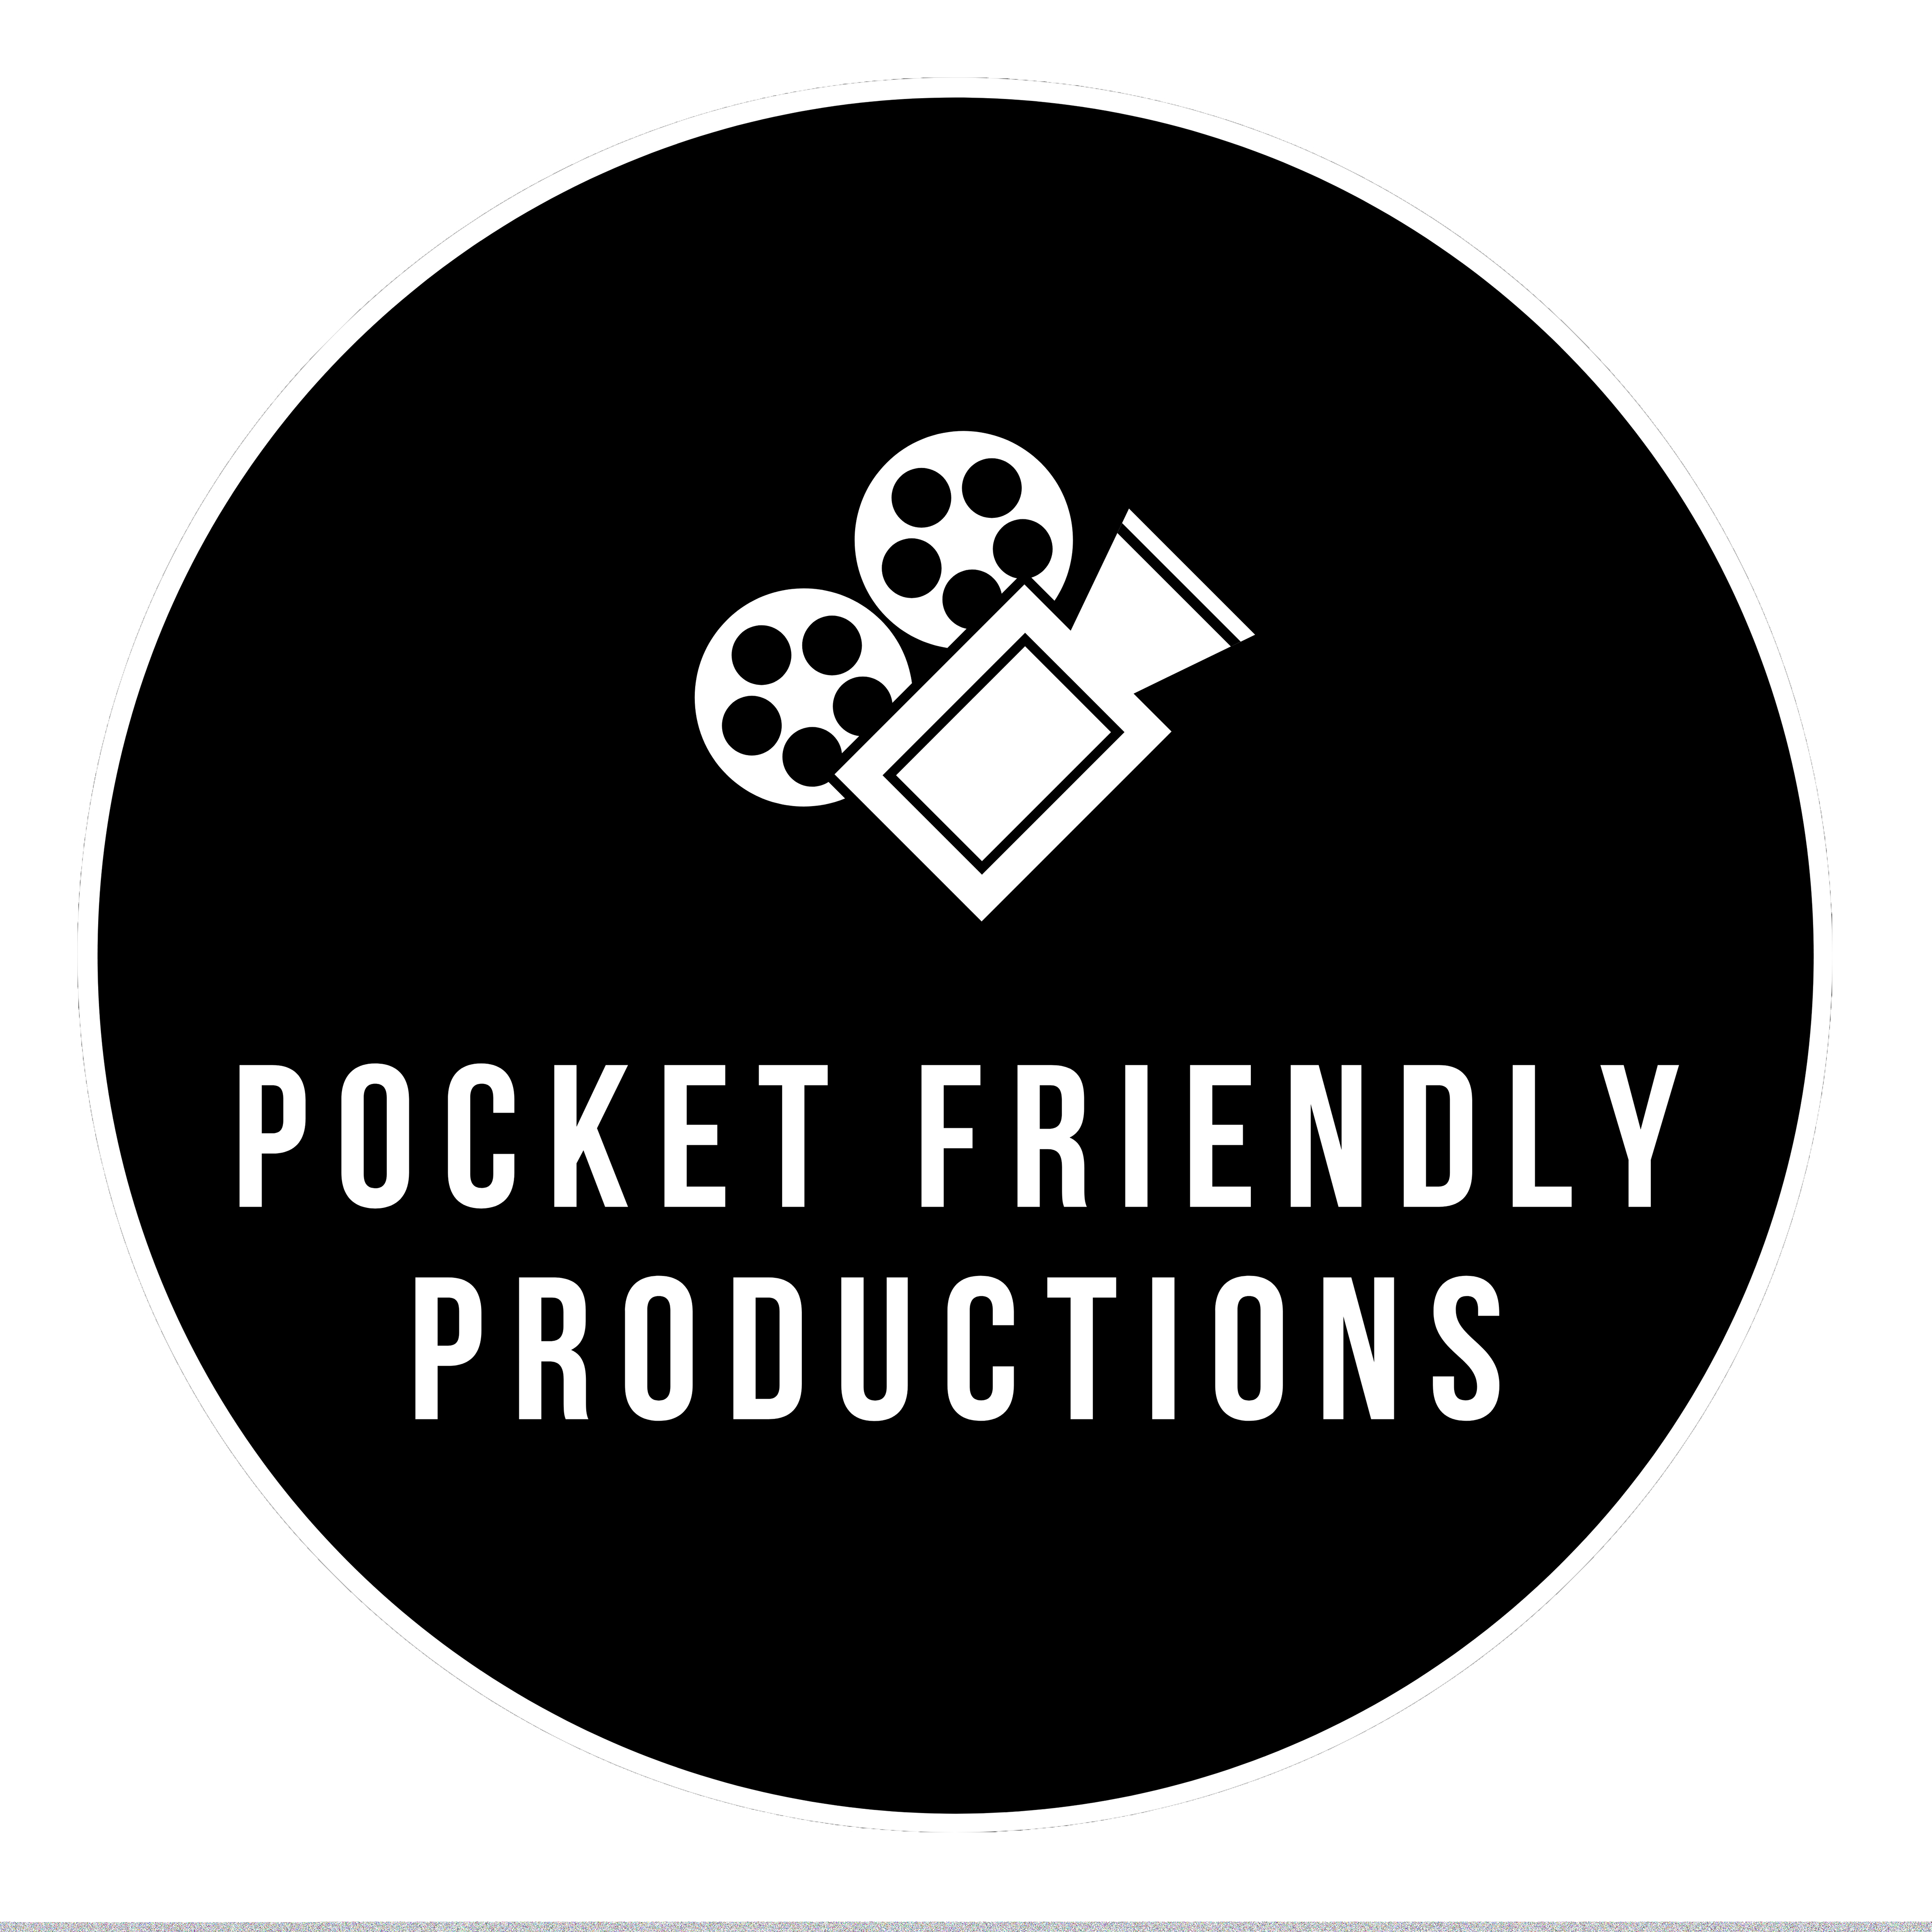 Pocket Friendly Productions